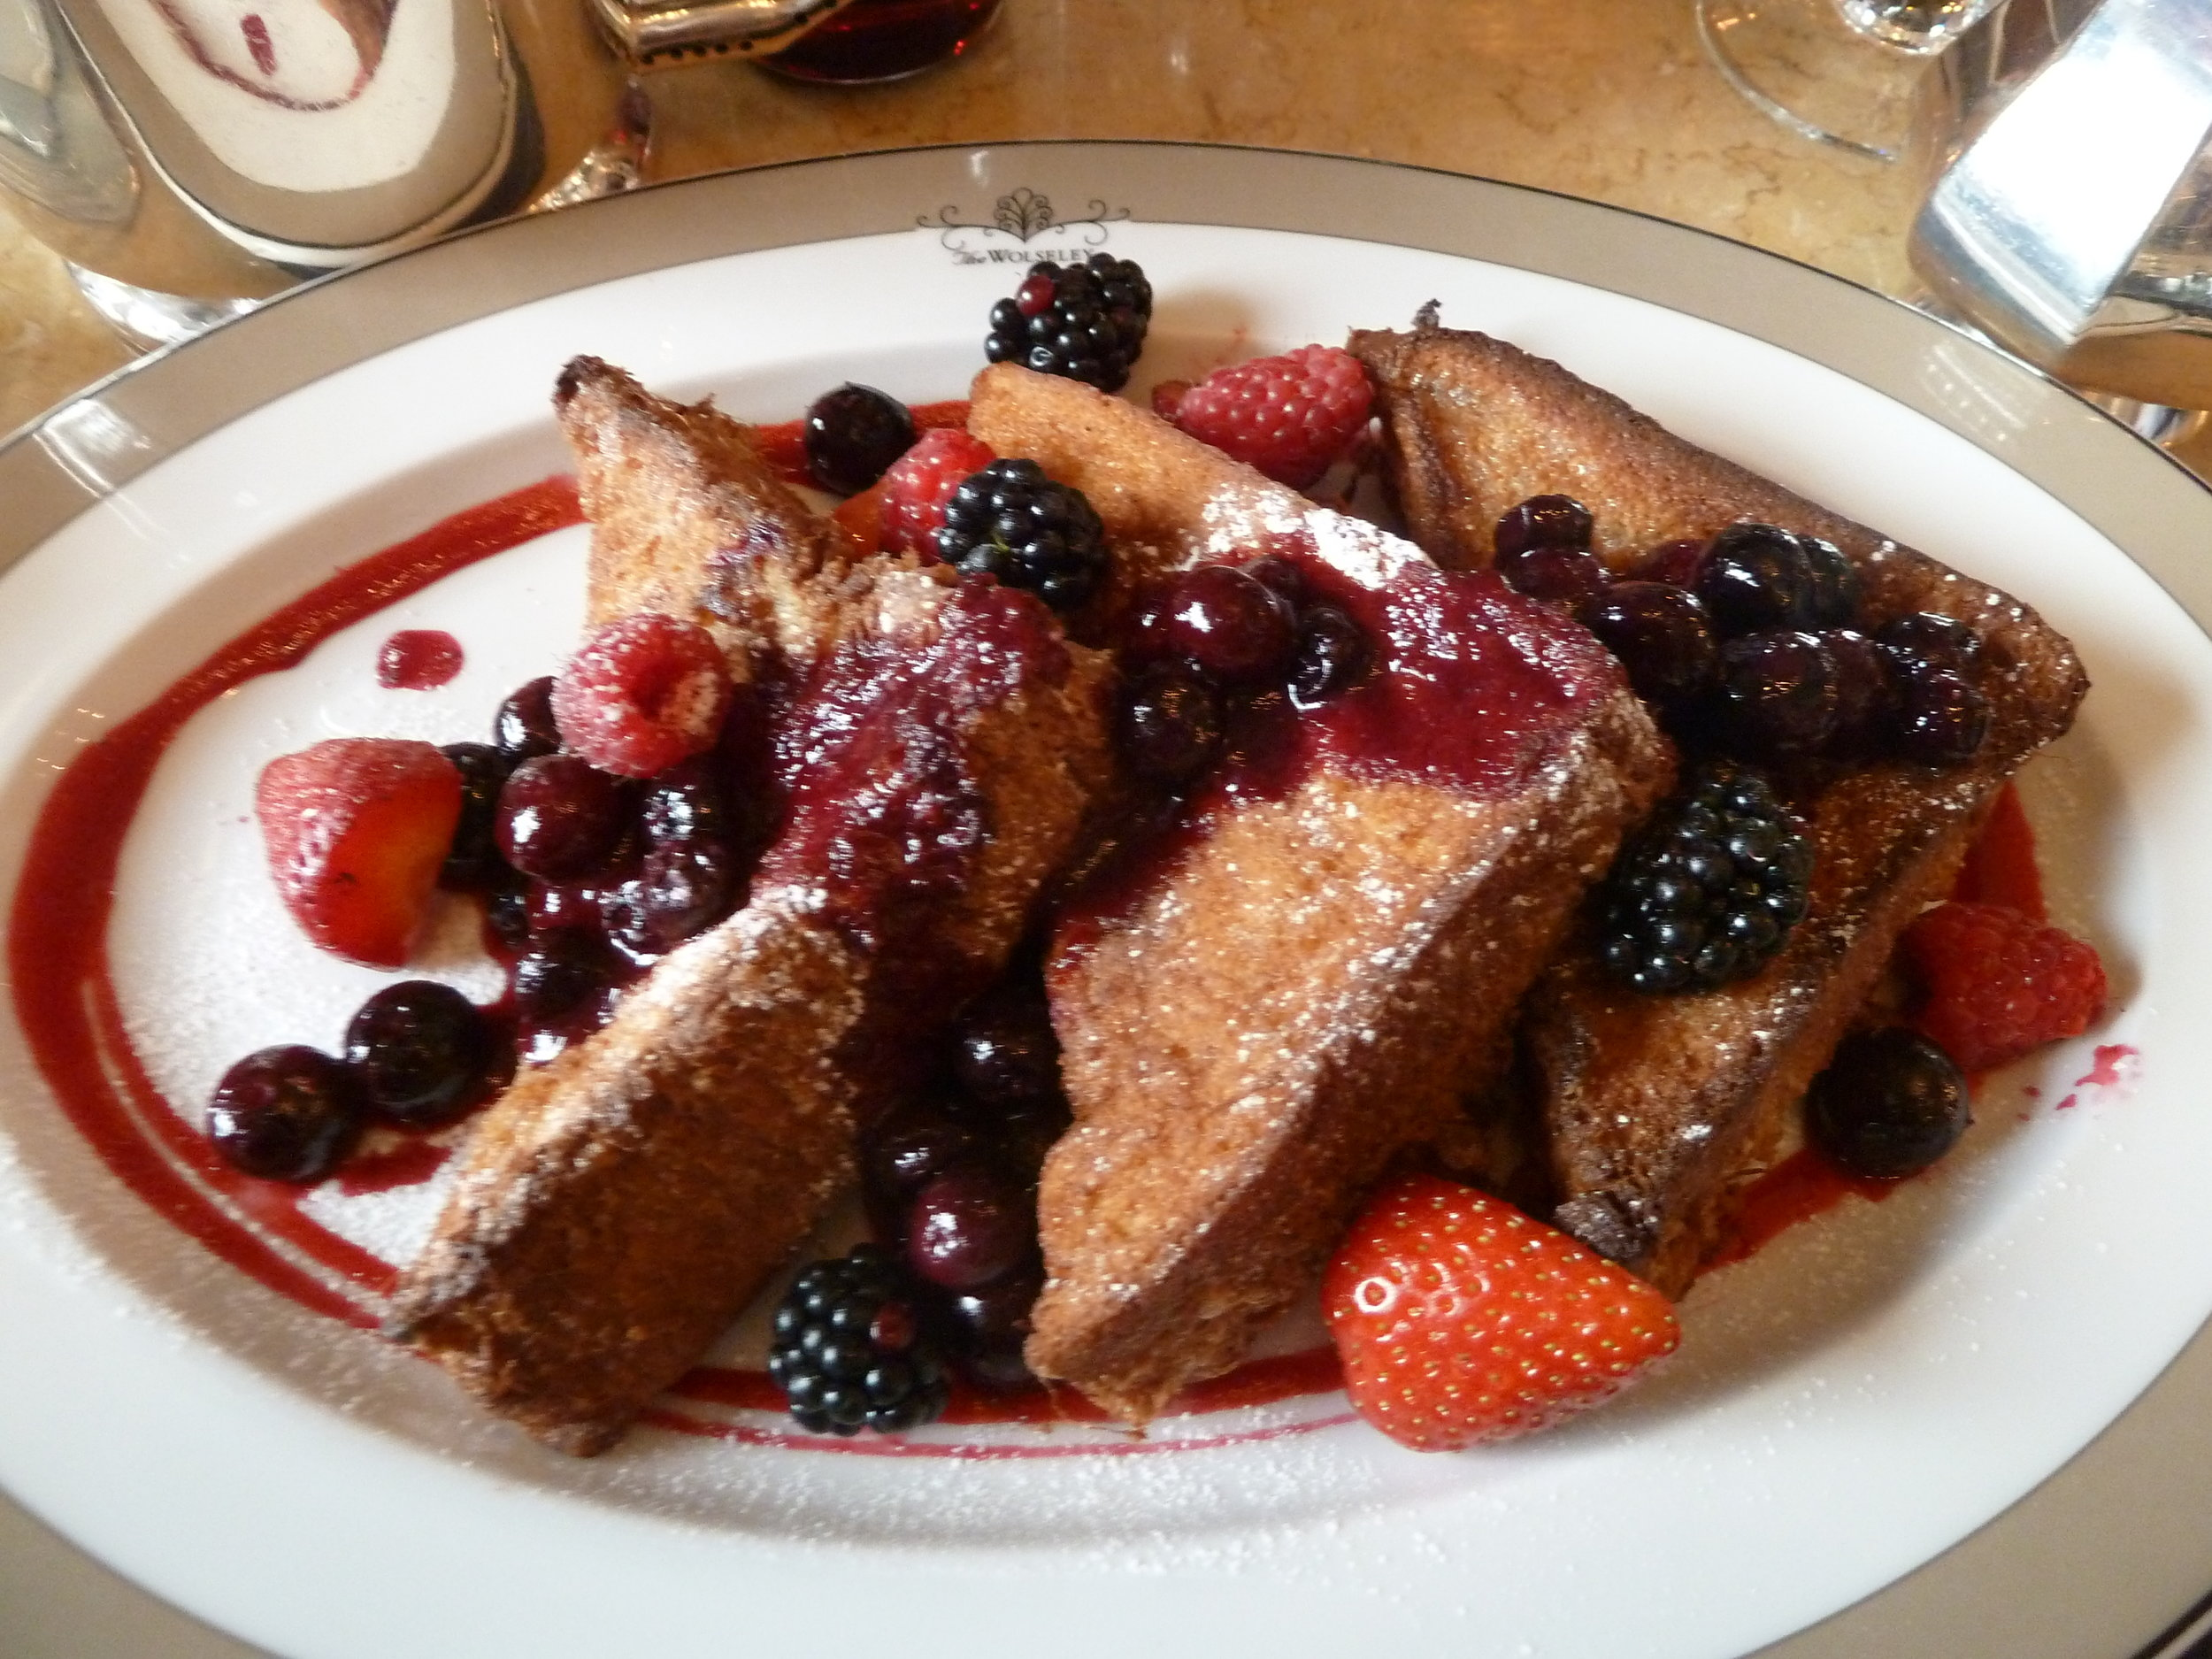 A delicious looking plate of French Toast from Wiki Commons